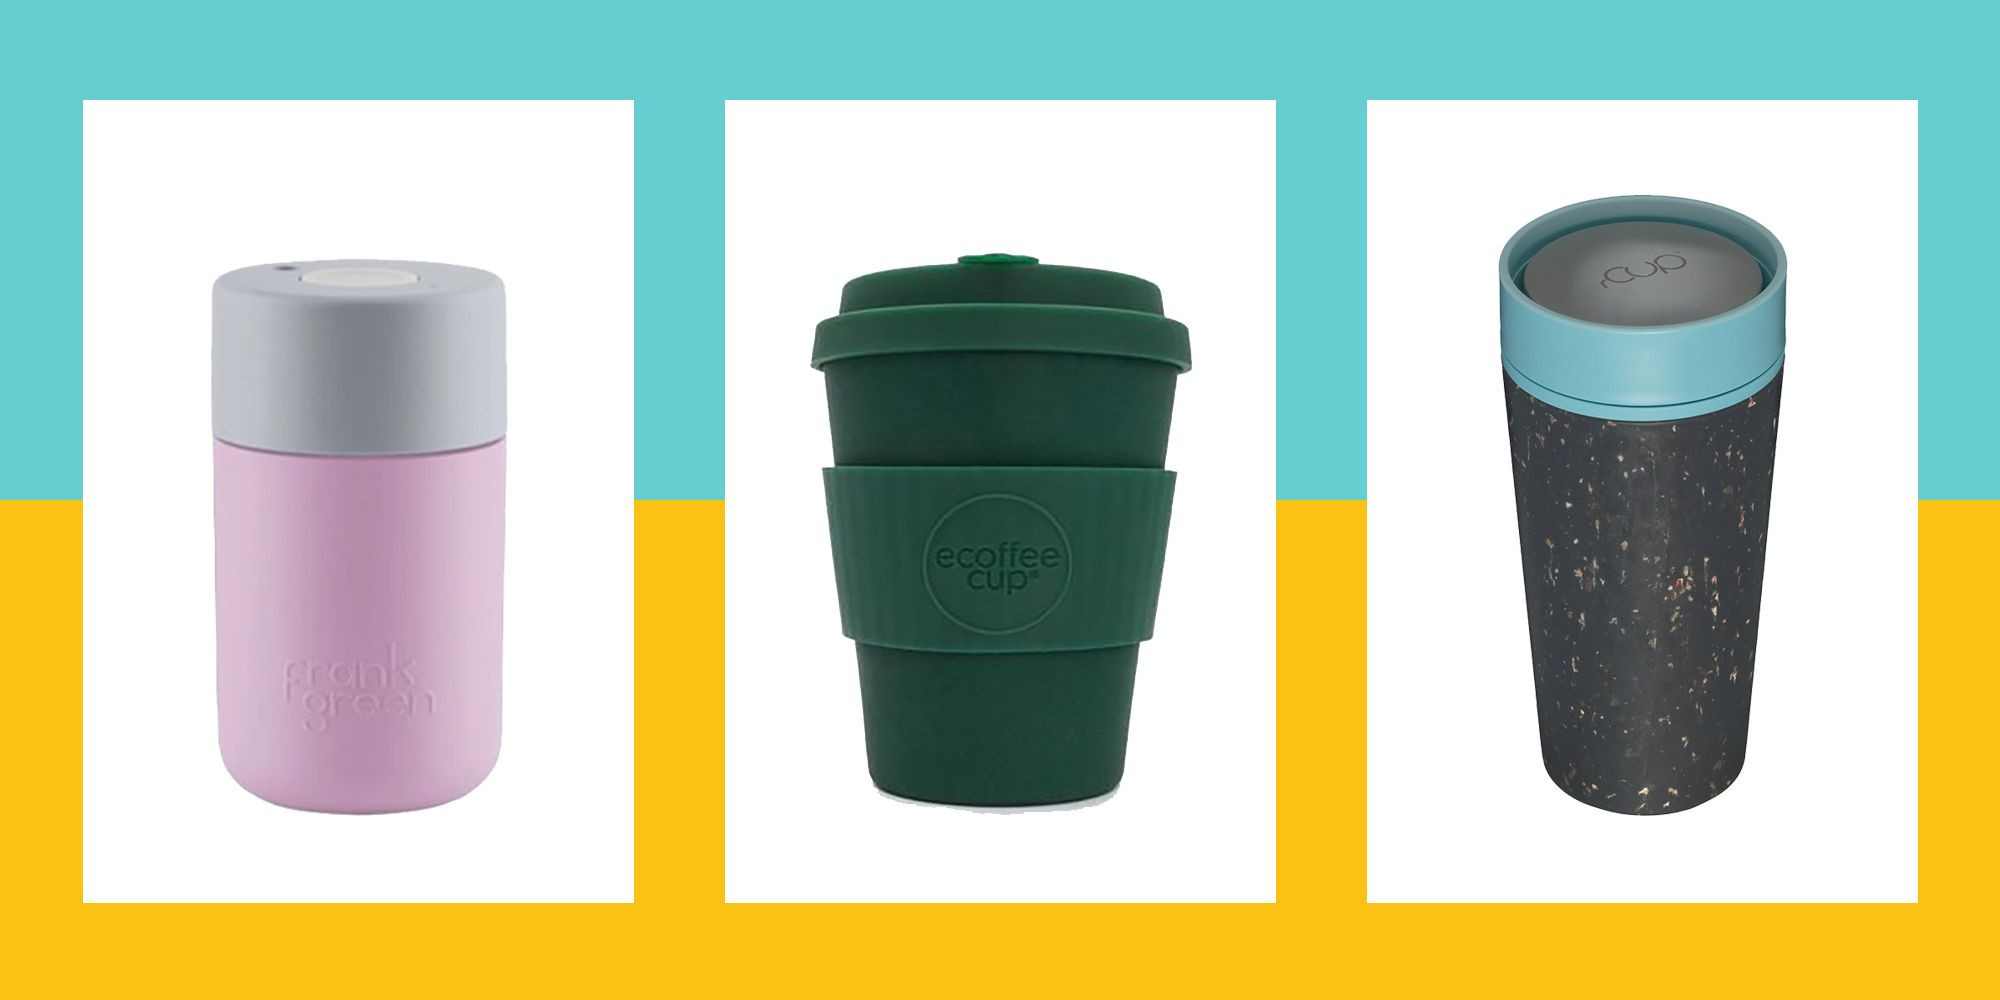 What is the best eco friendly and reusable coffee cup on the